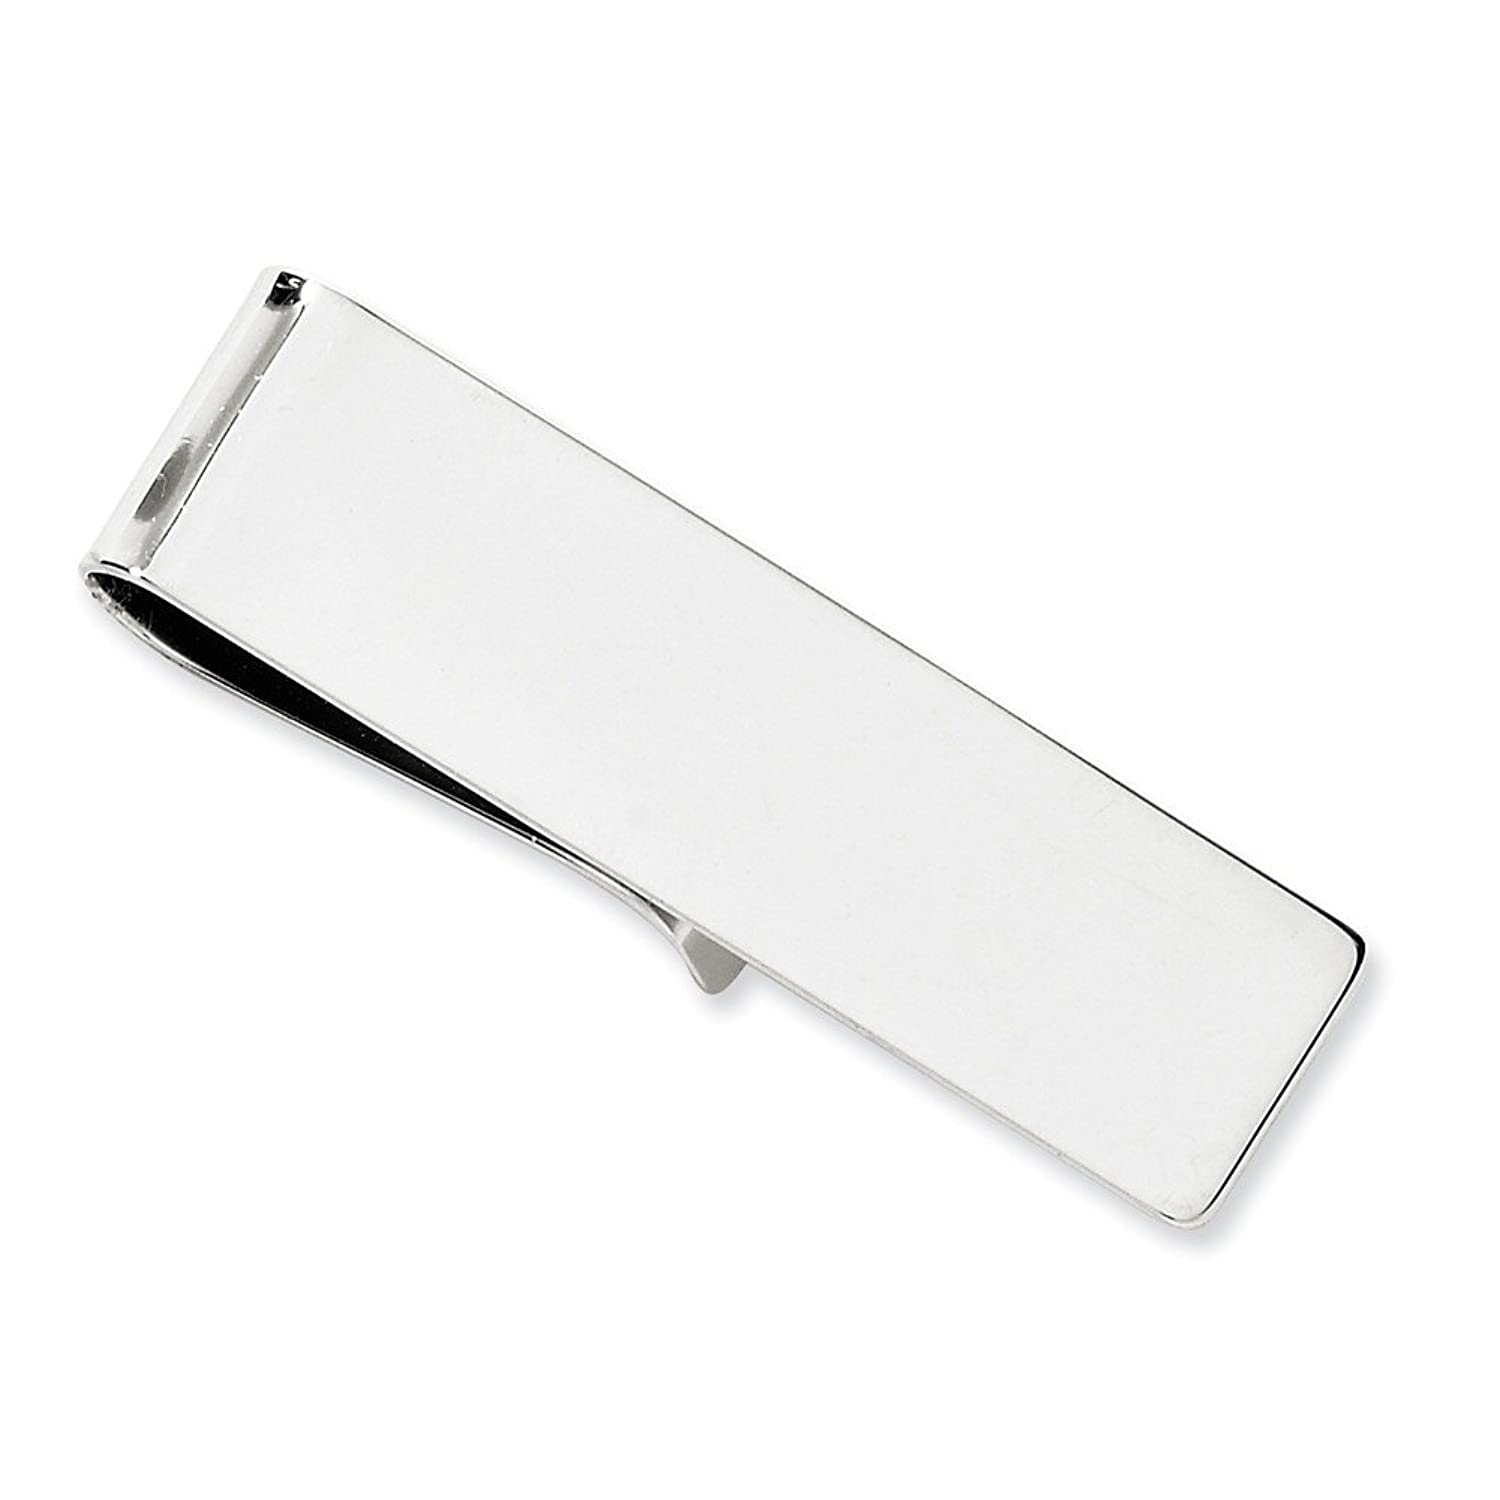 14k Solid White Gold Money Clip